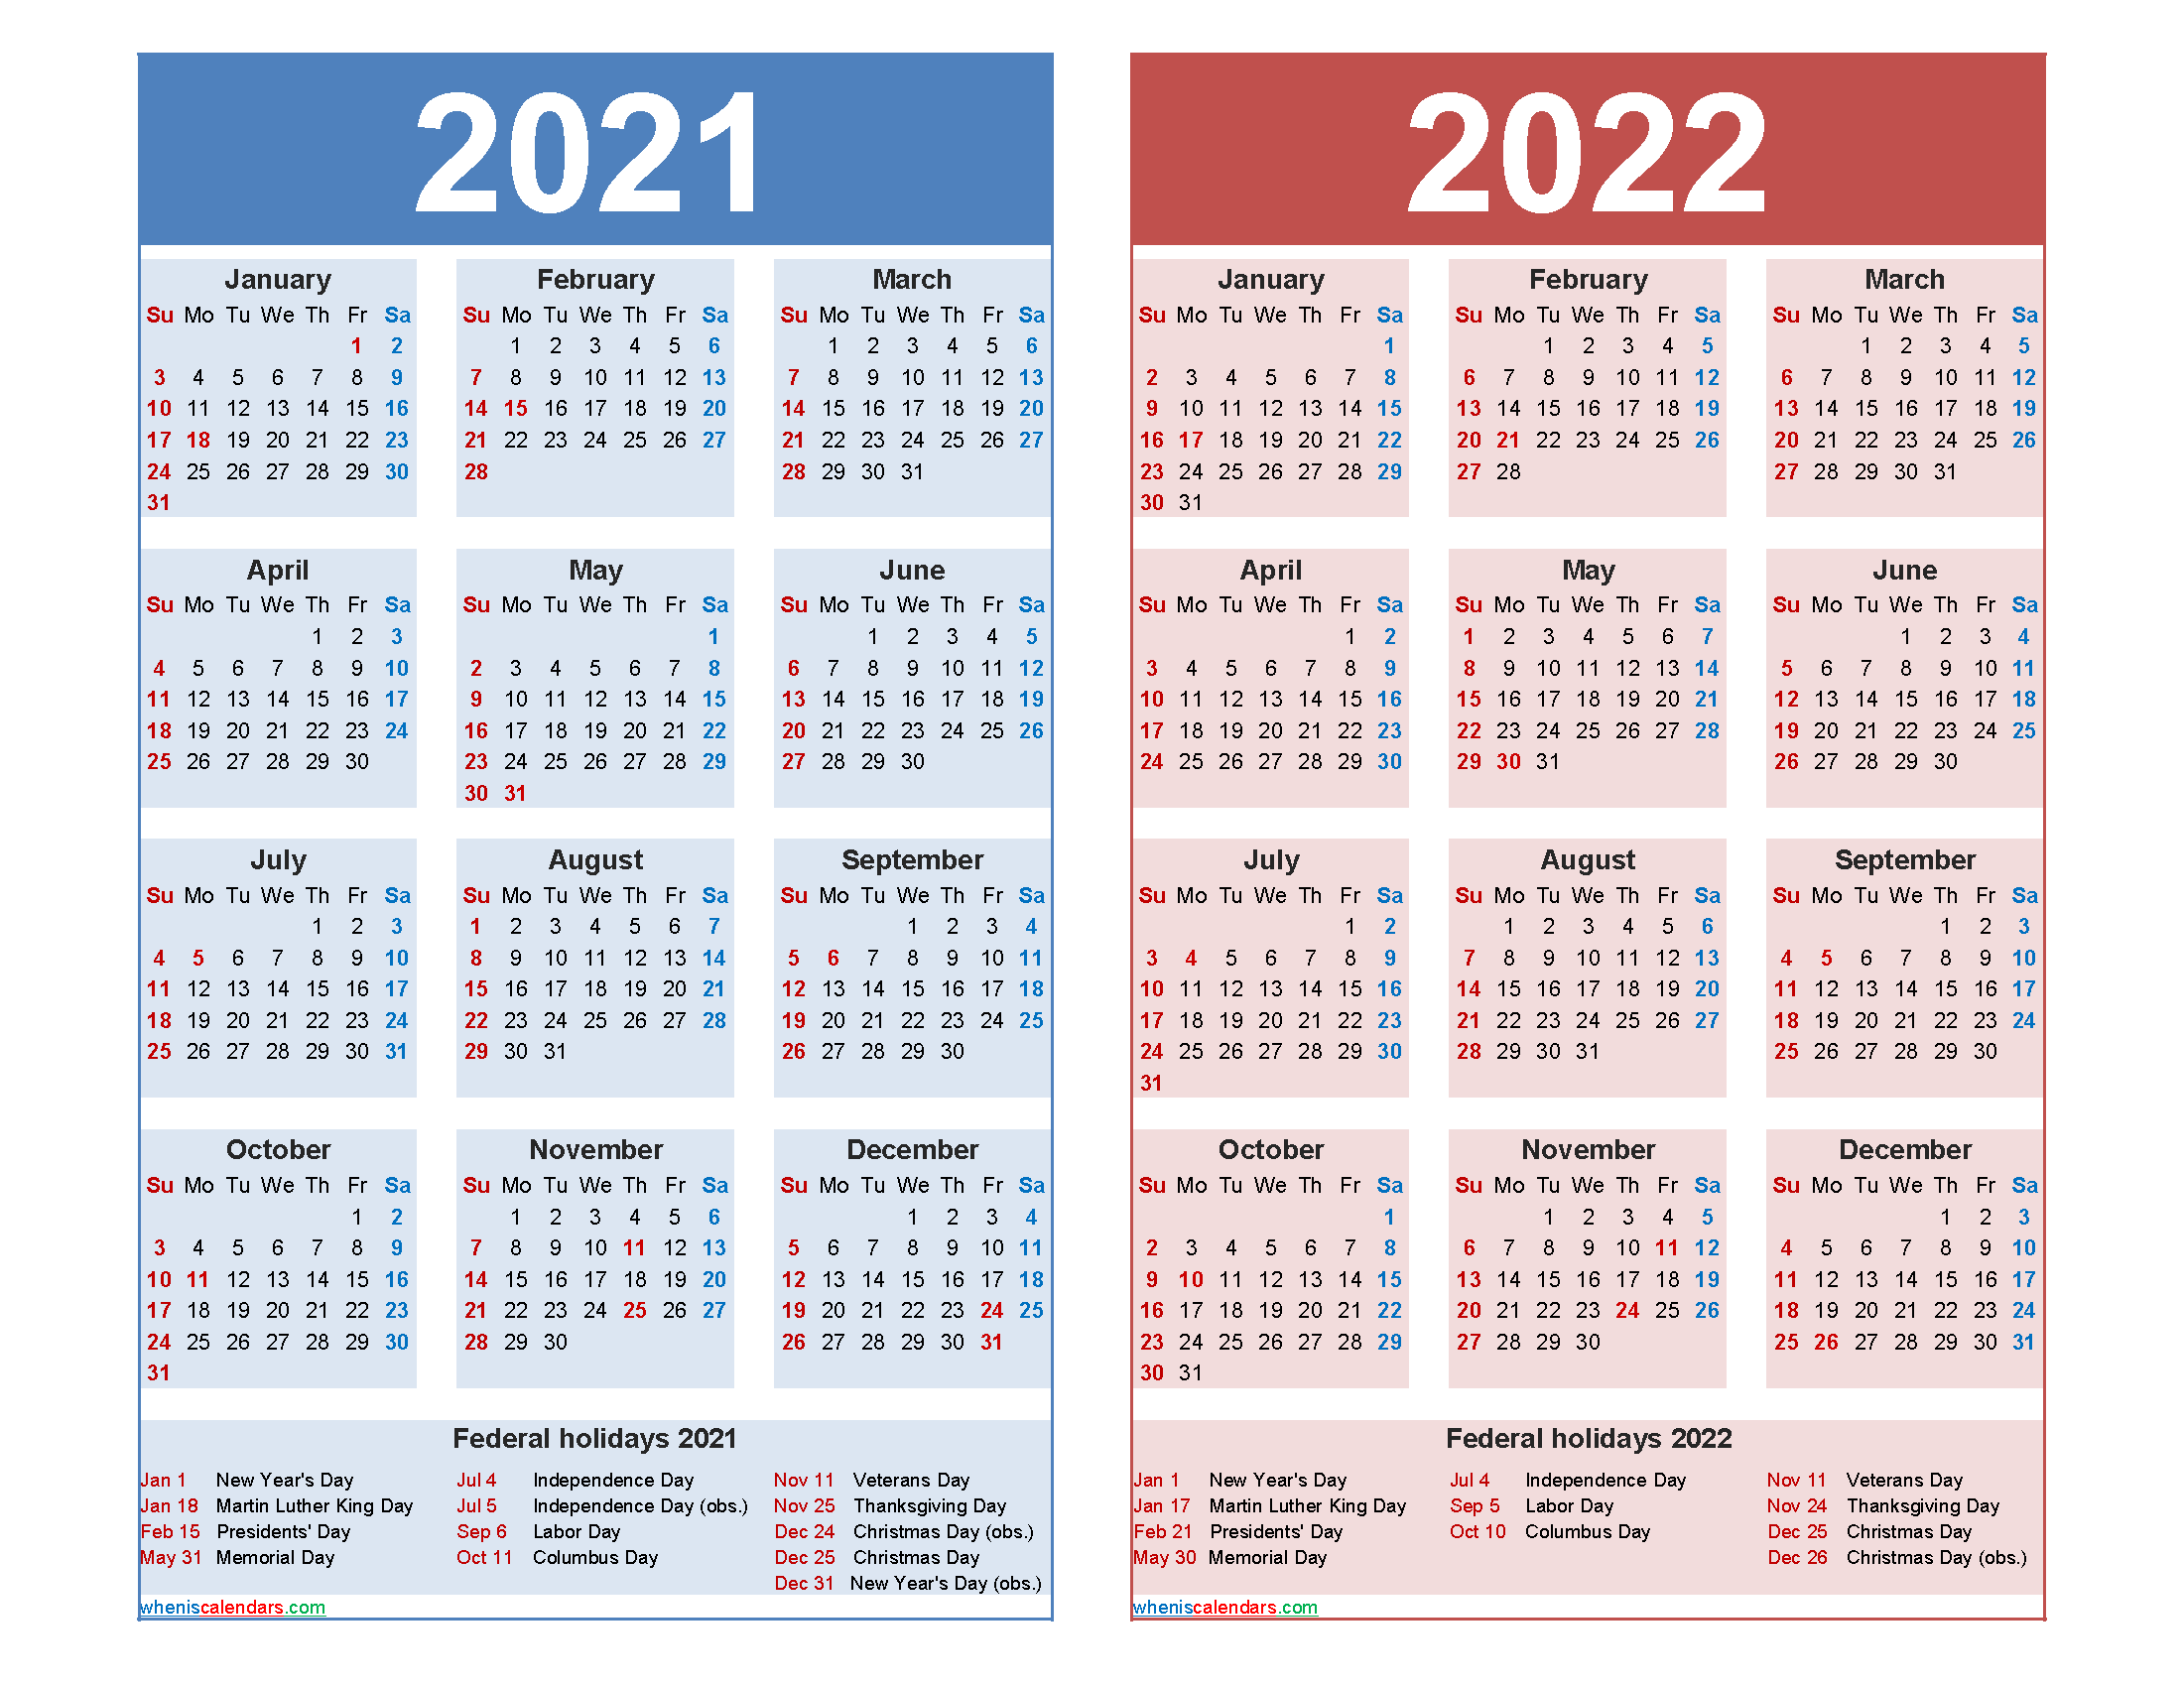 Free 2021 and 2022 Calendar Printable with Holidays